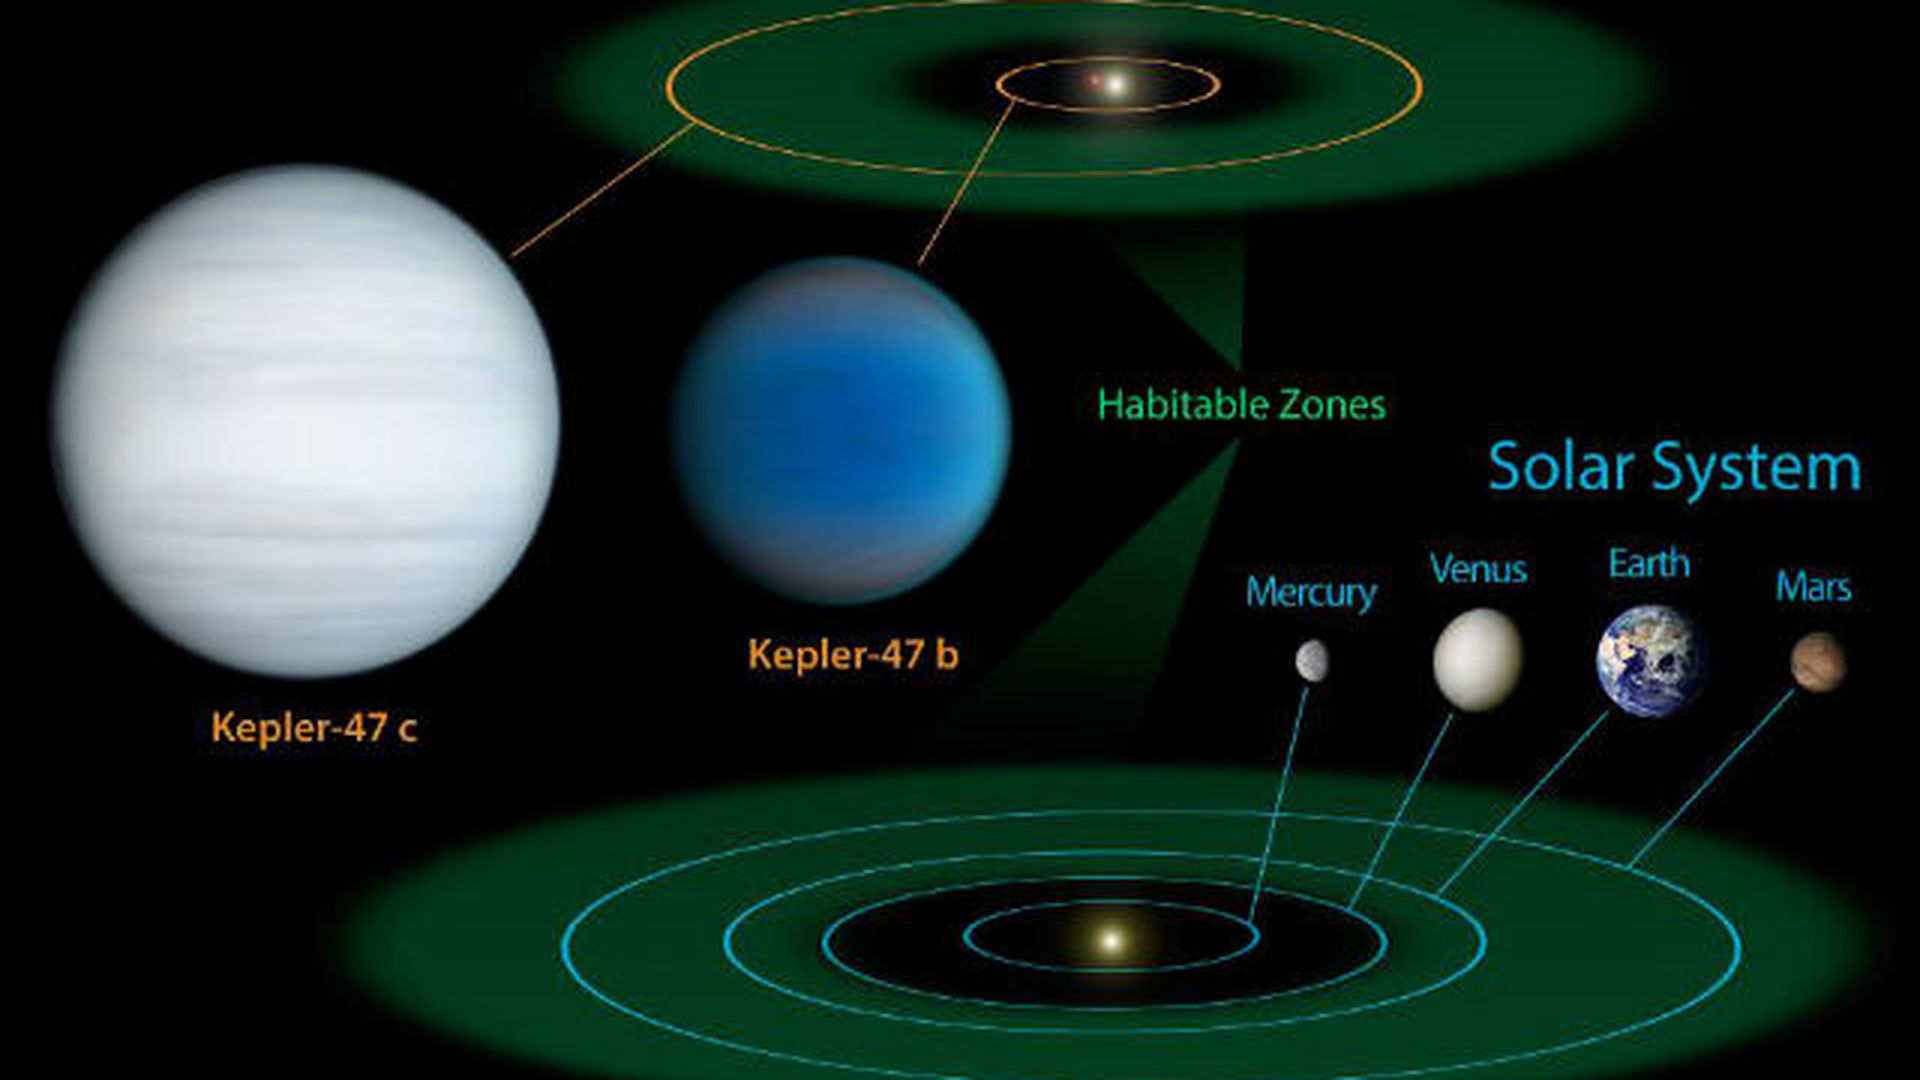 kepler planets habitable zone - HD 1920×1080